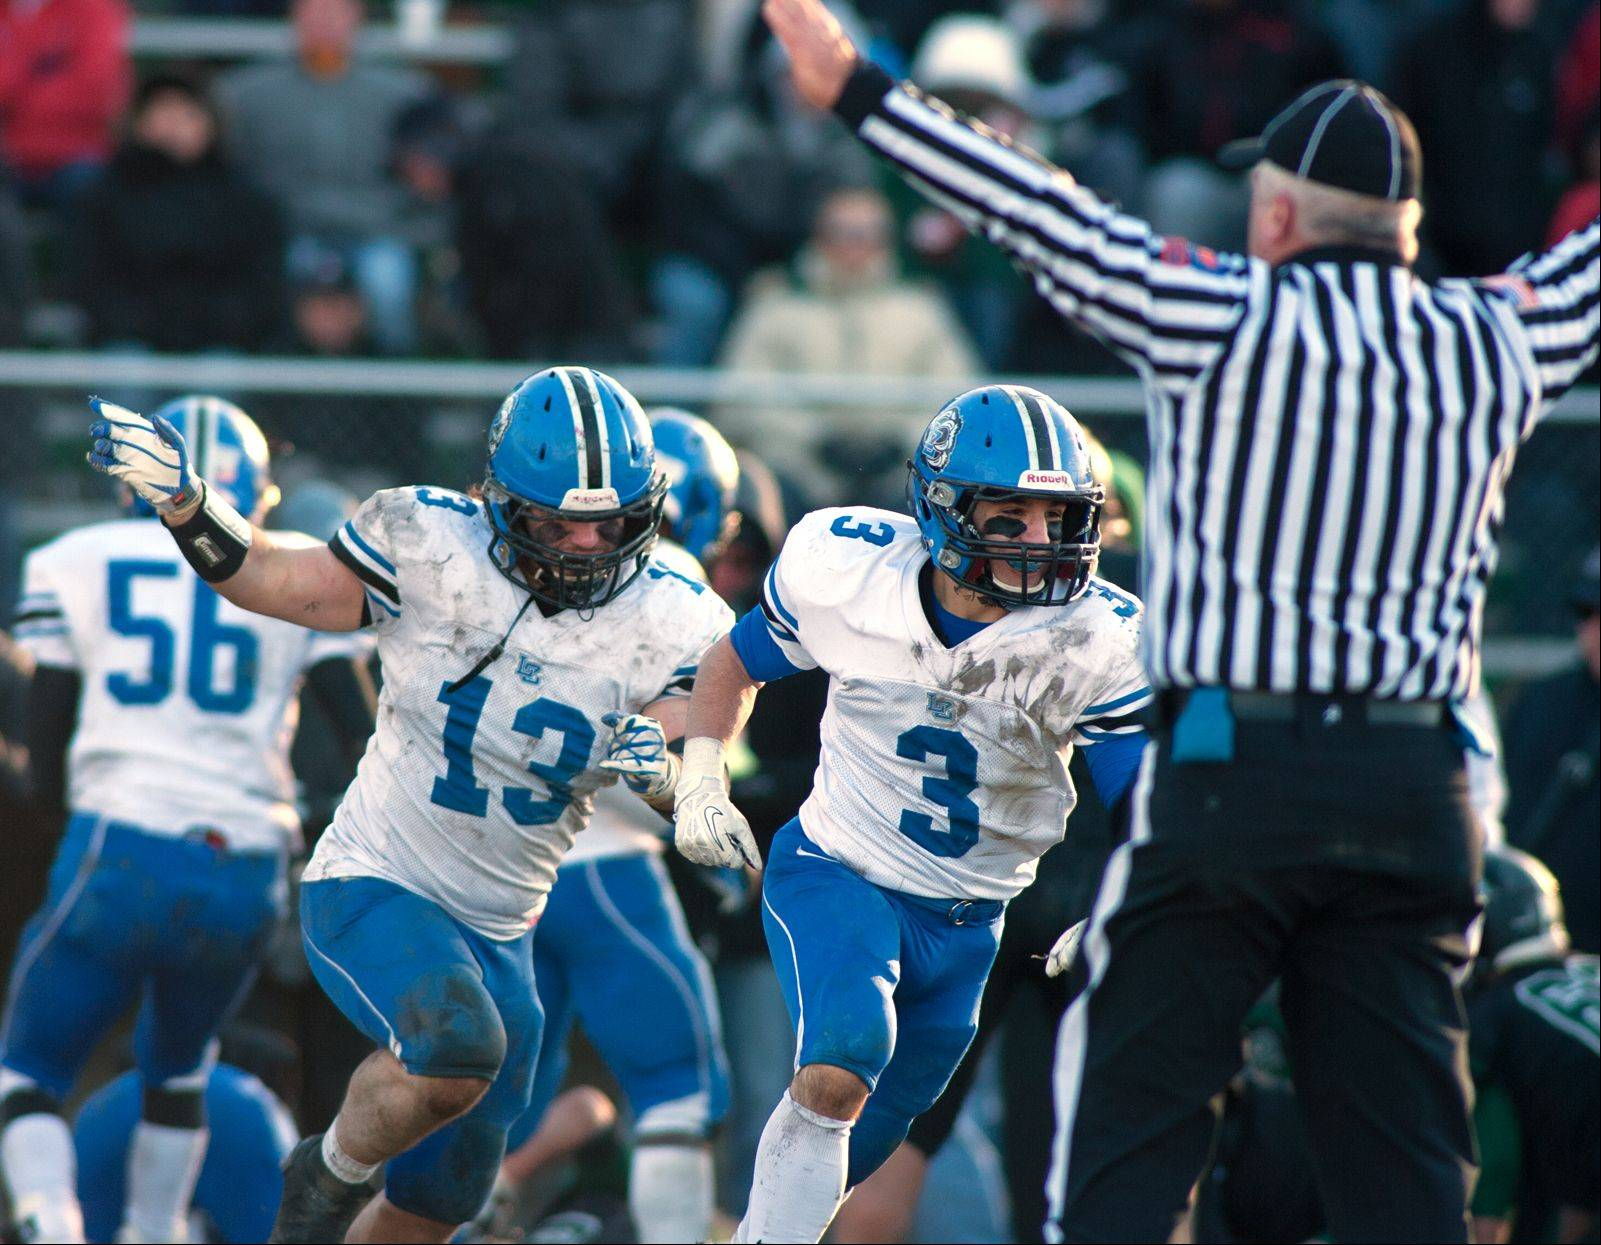 Lake Zurich defensive end Chris Lehtinen (13) and cornerback Dominic Scaduto (3) celebrate a turnover during Saturday's Class 7A state semifinal at Glenbard West.